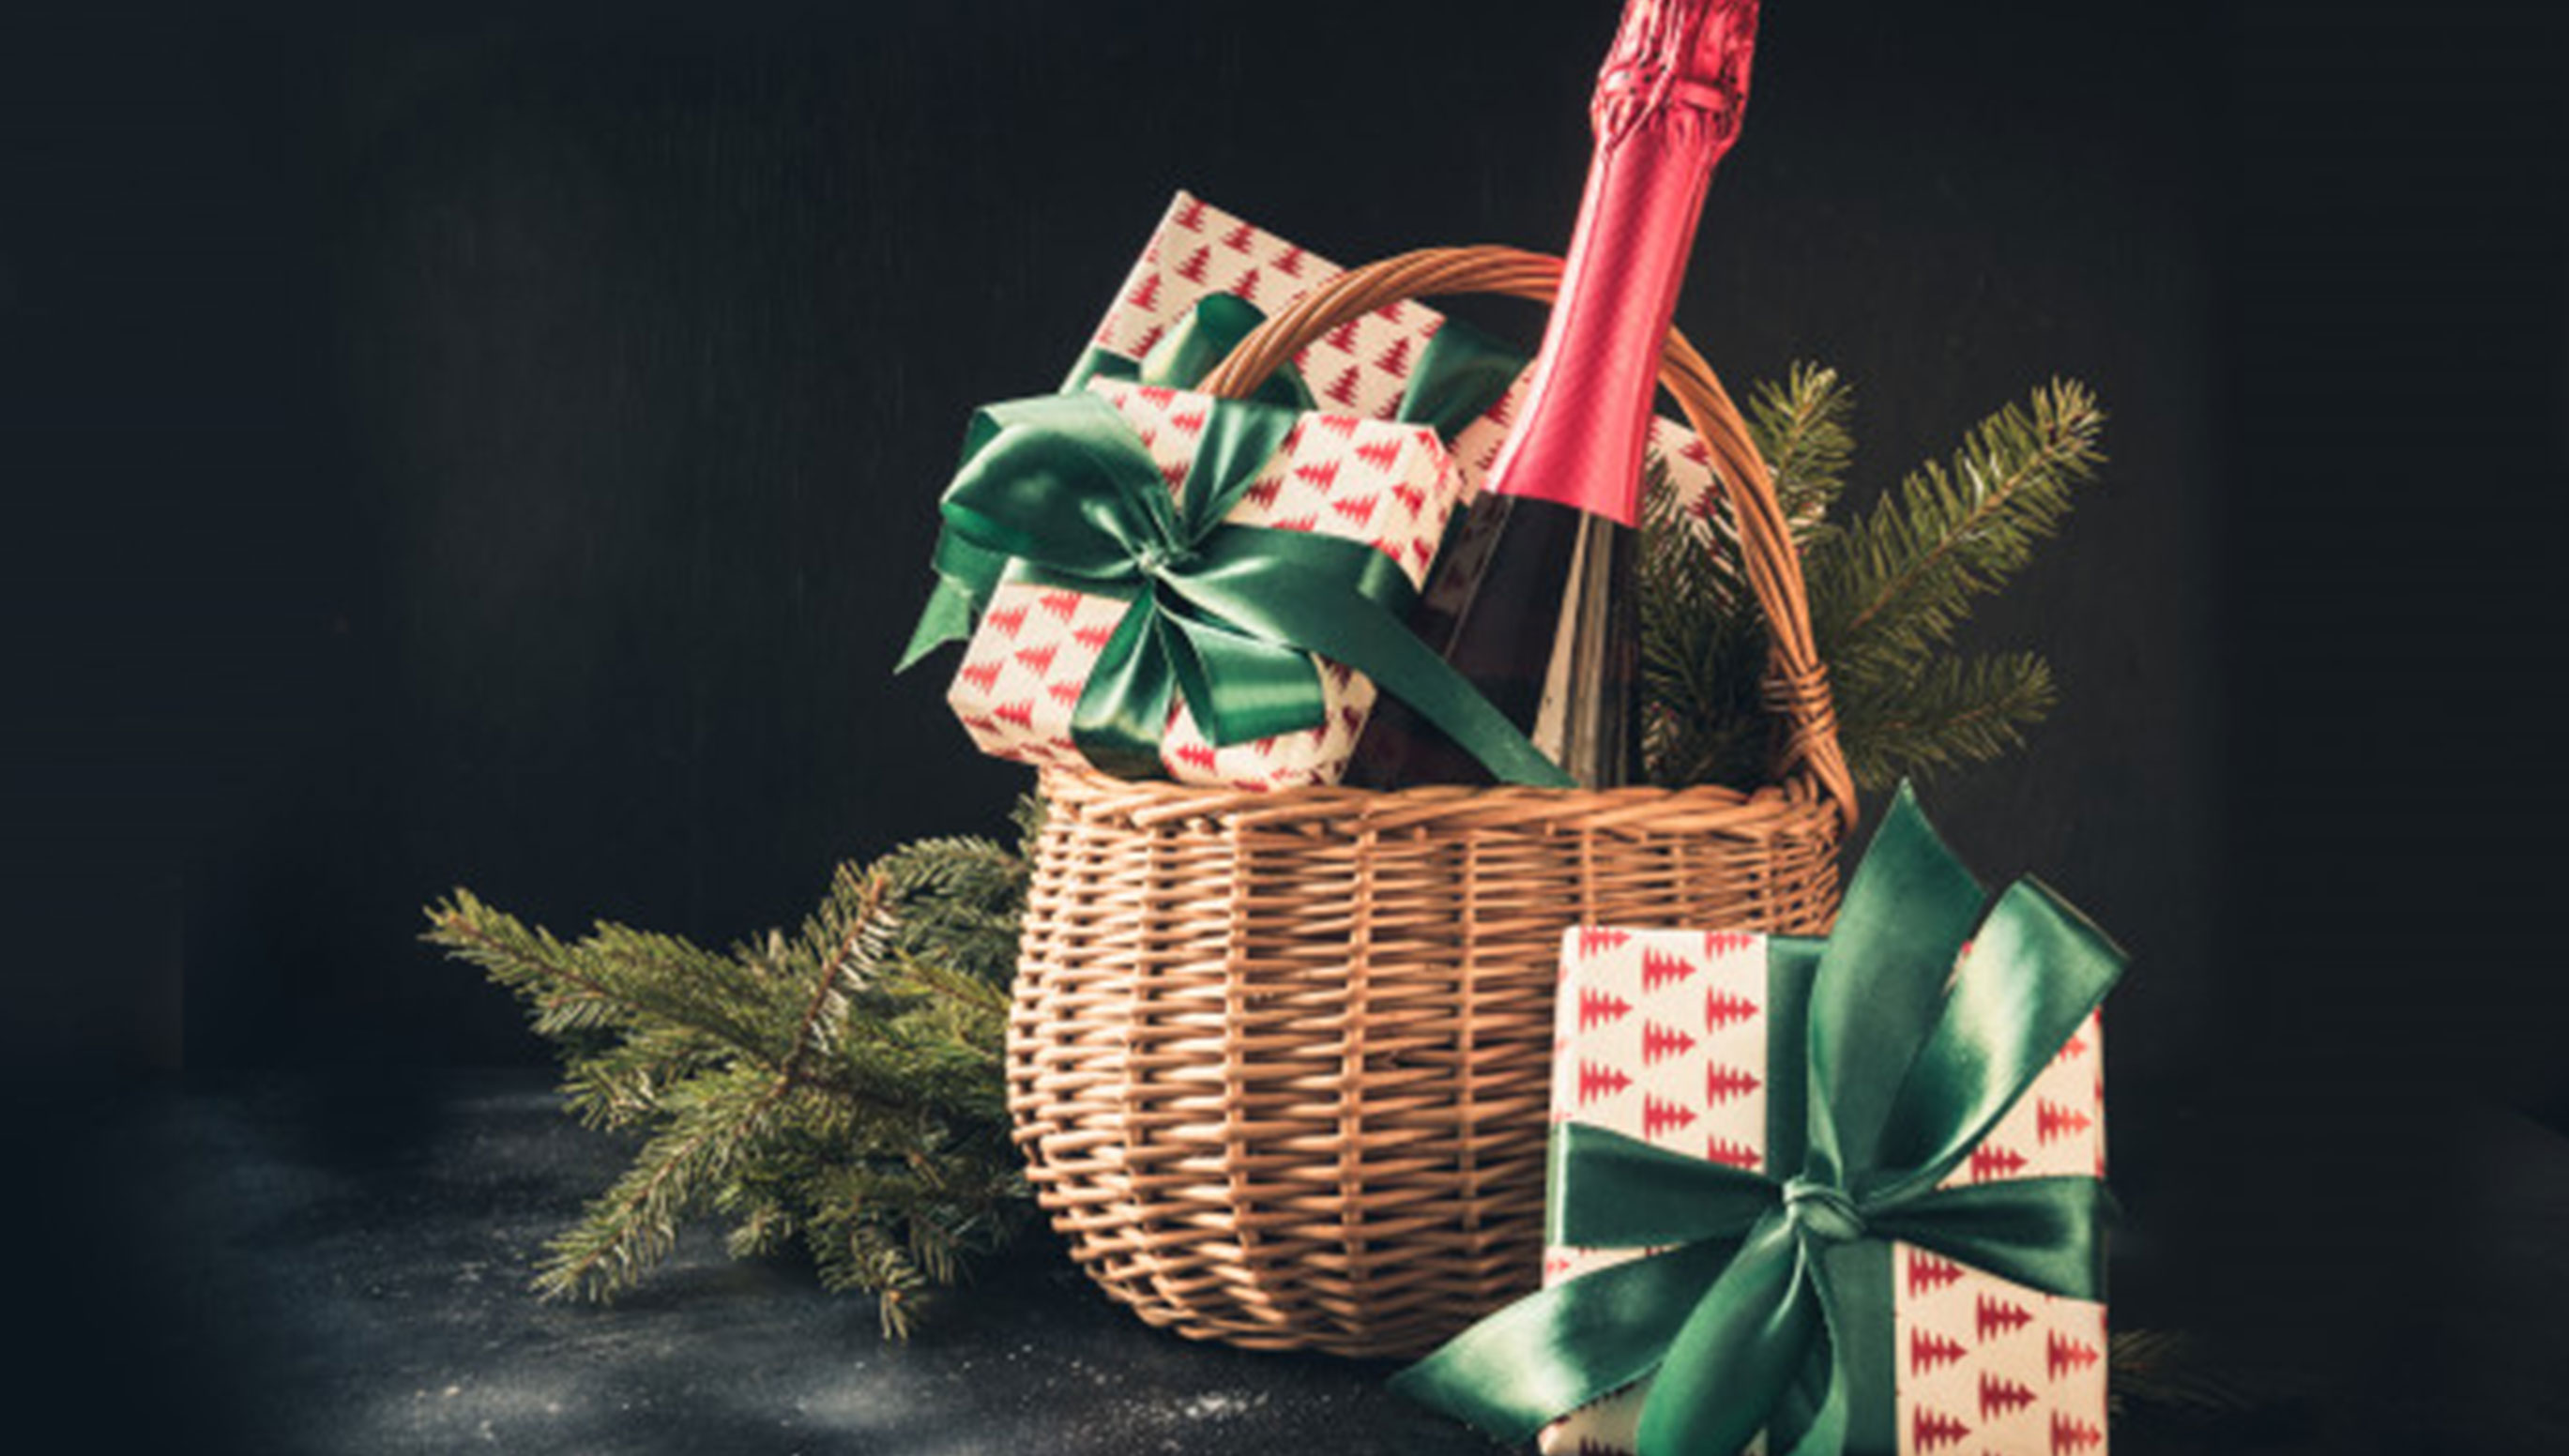 HInexpensive Christmas Hampers for Budget Shoppers